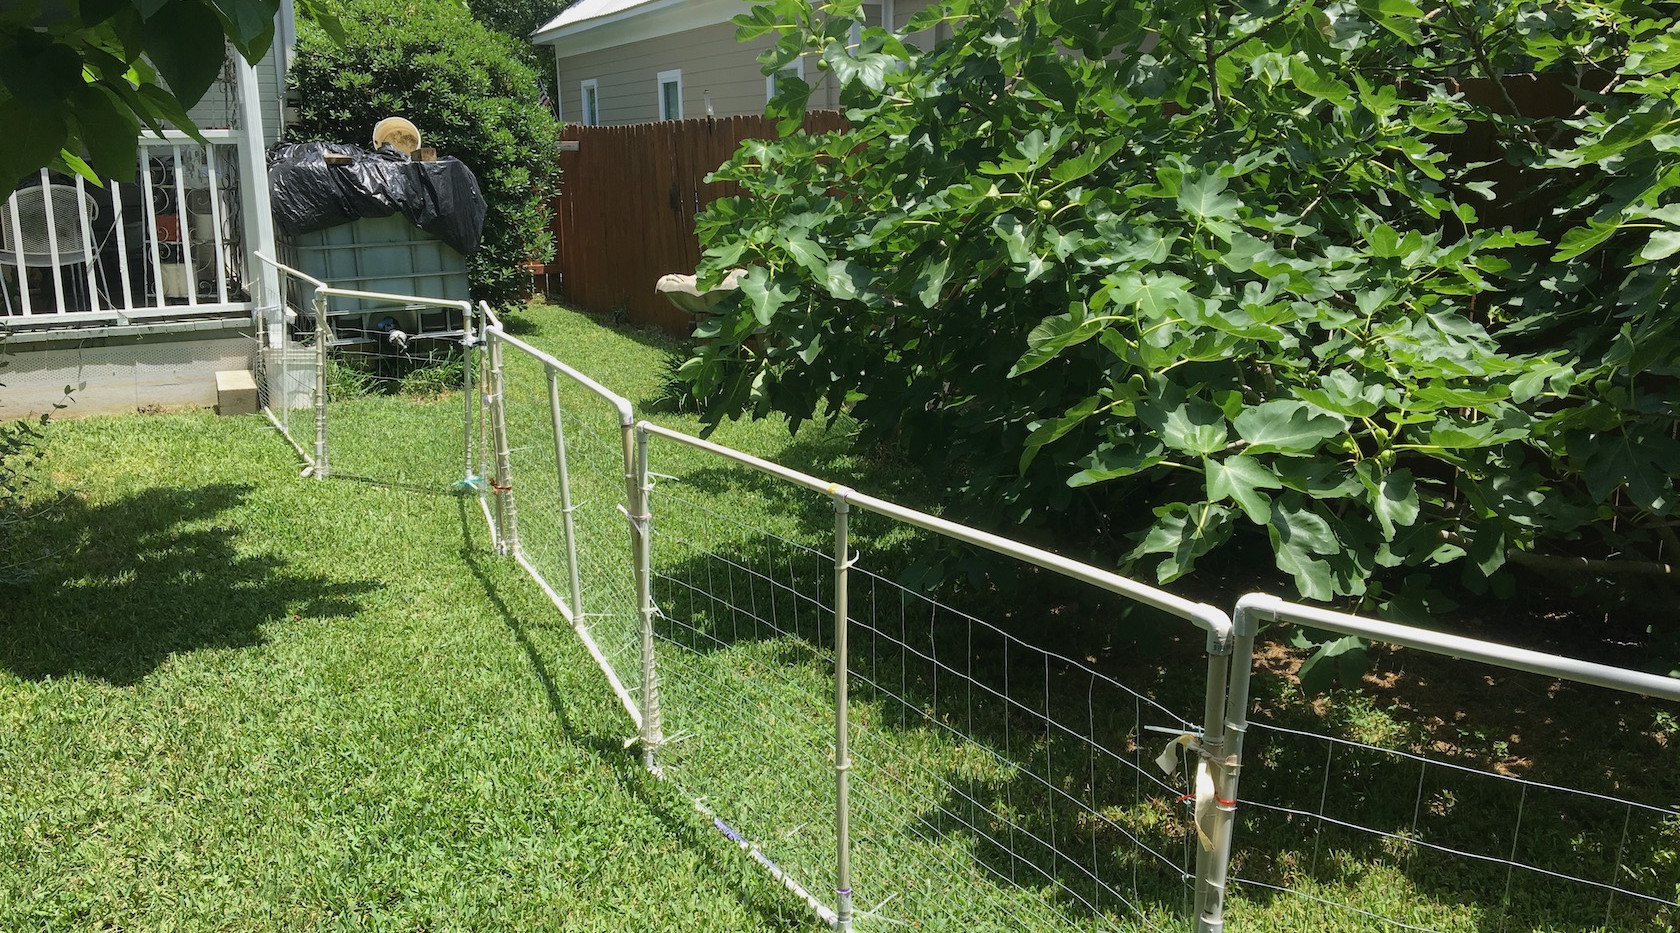 Portable fence panels out of PVC pipe